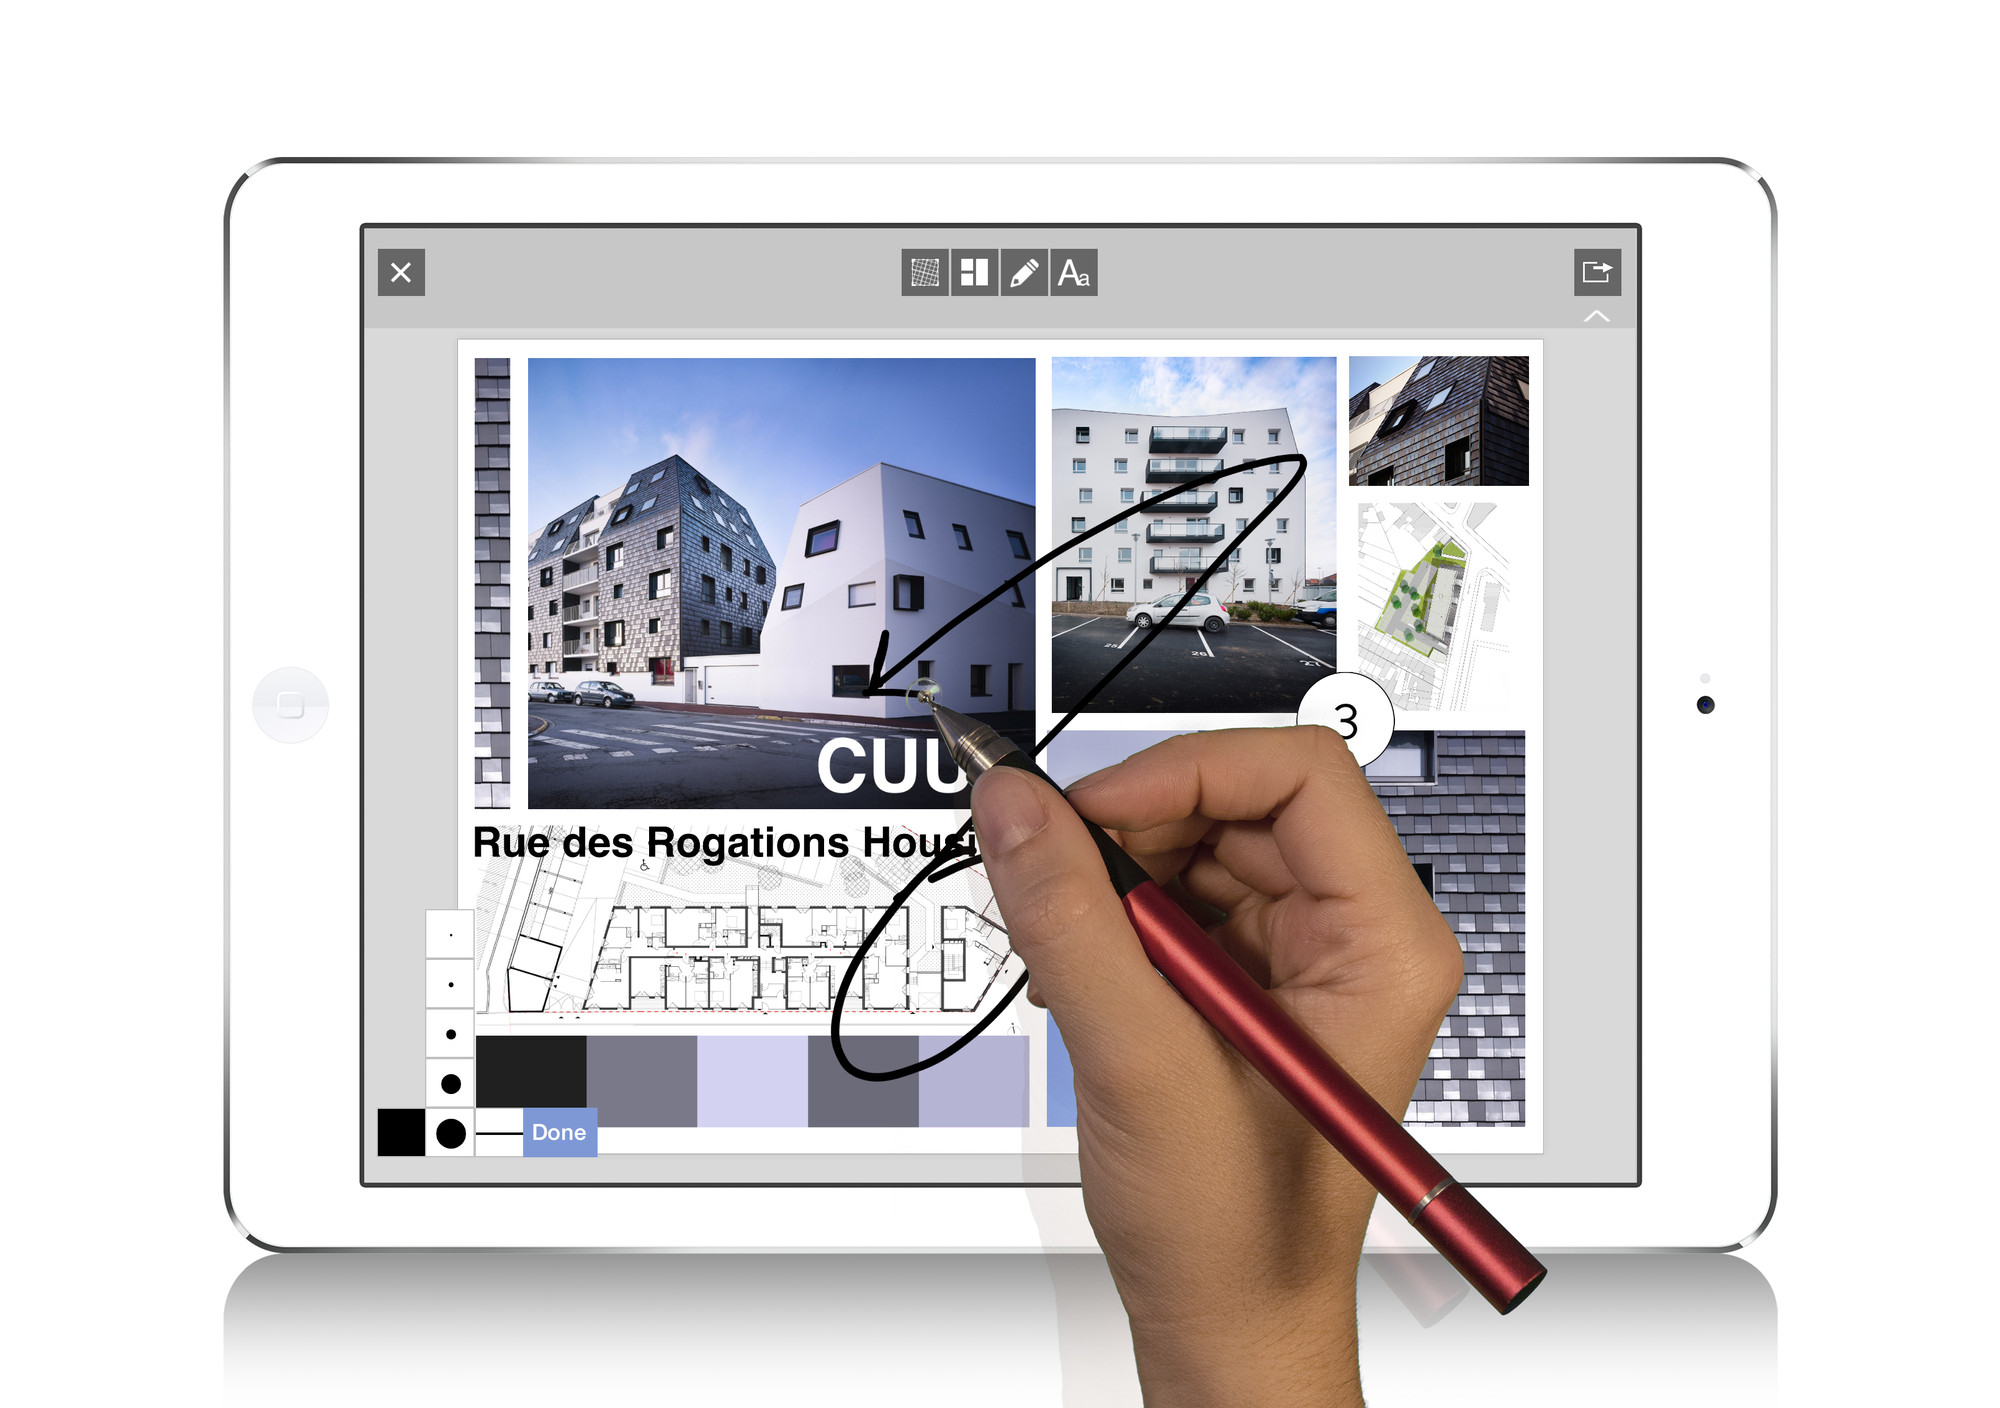 AD App Guide: Morpholio Board 2.0., Courtesy of the Morpholio Project